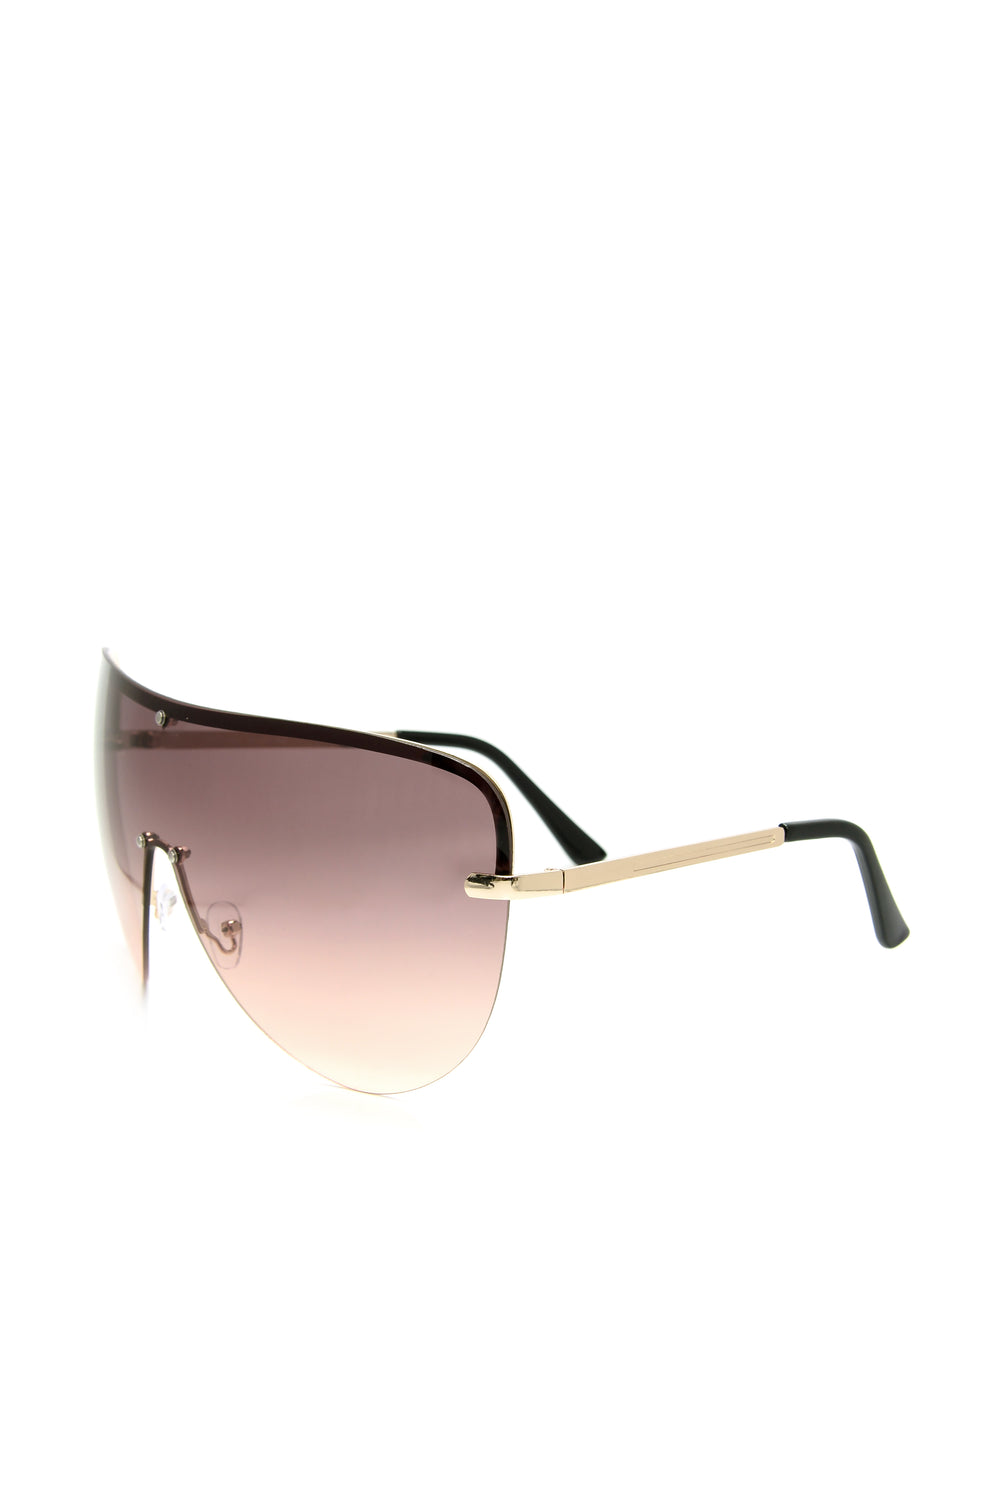 Deandra Shield Sunglasses - Brown